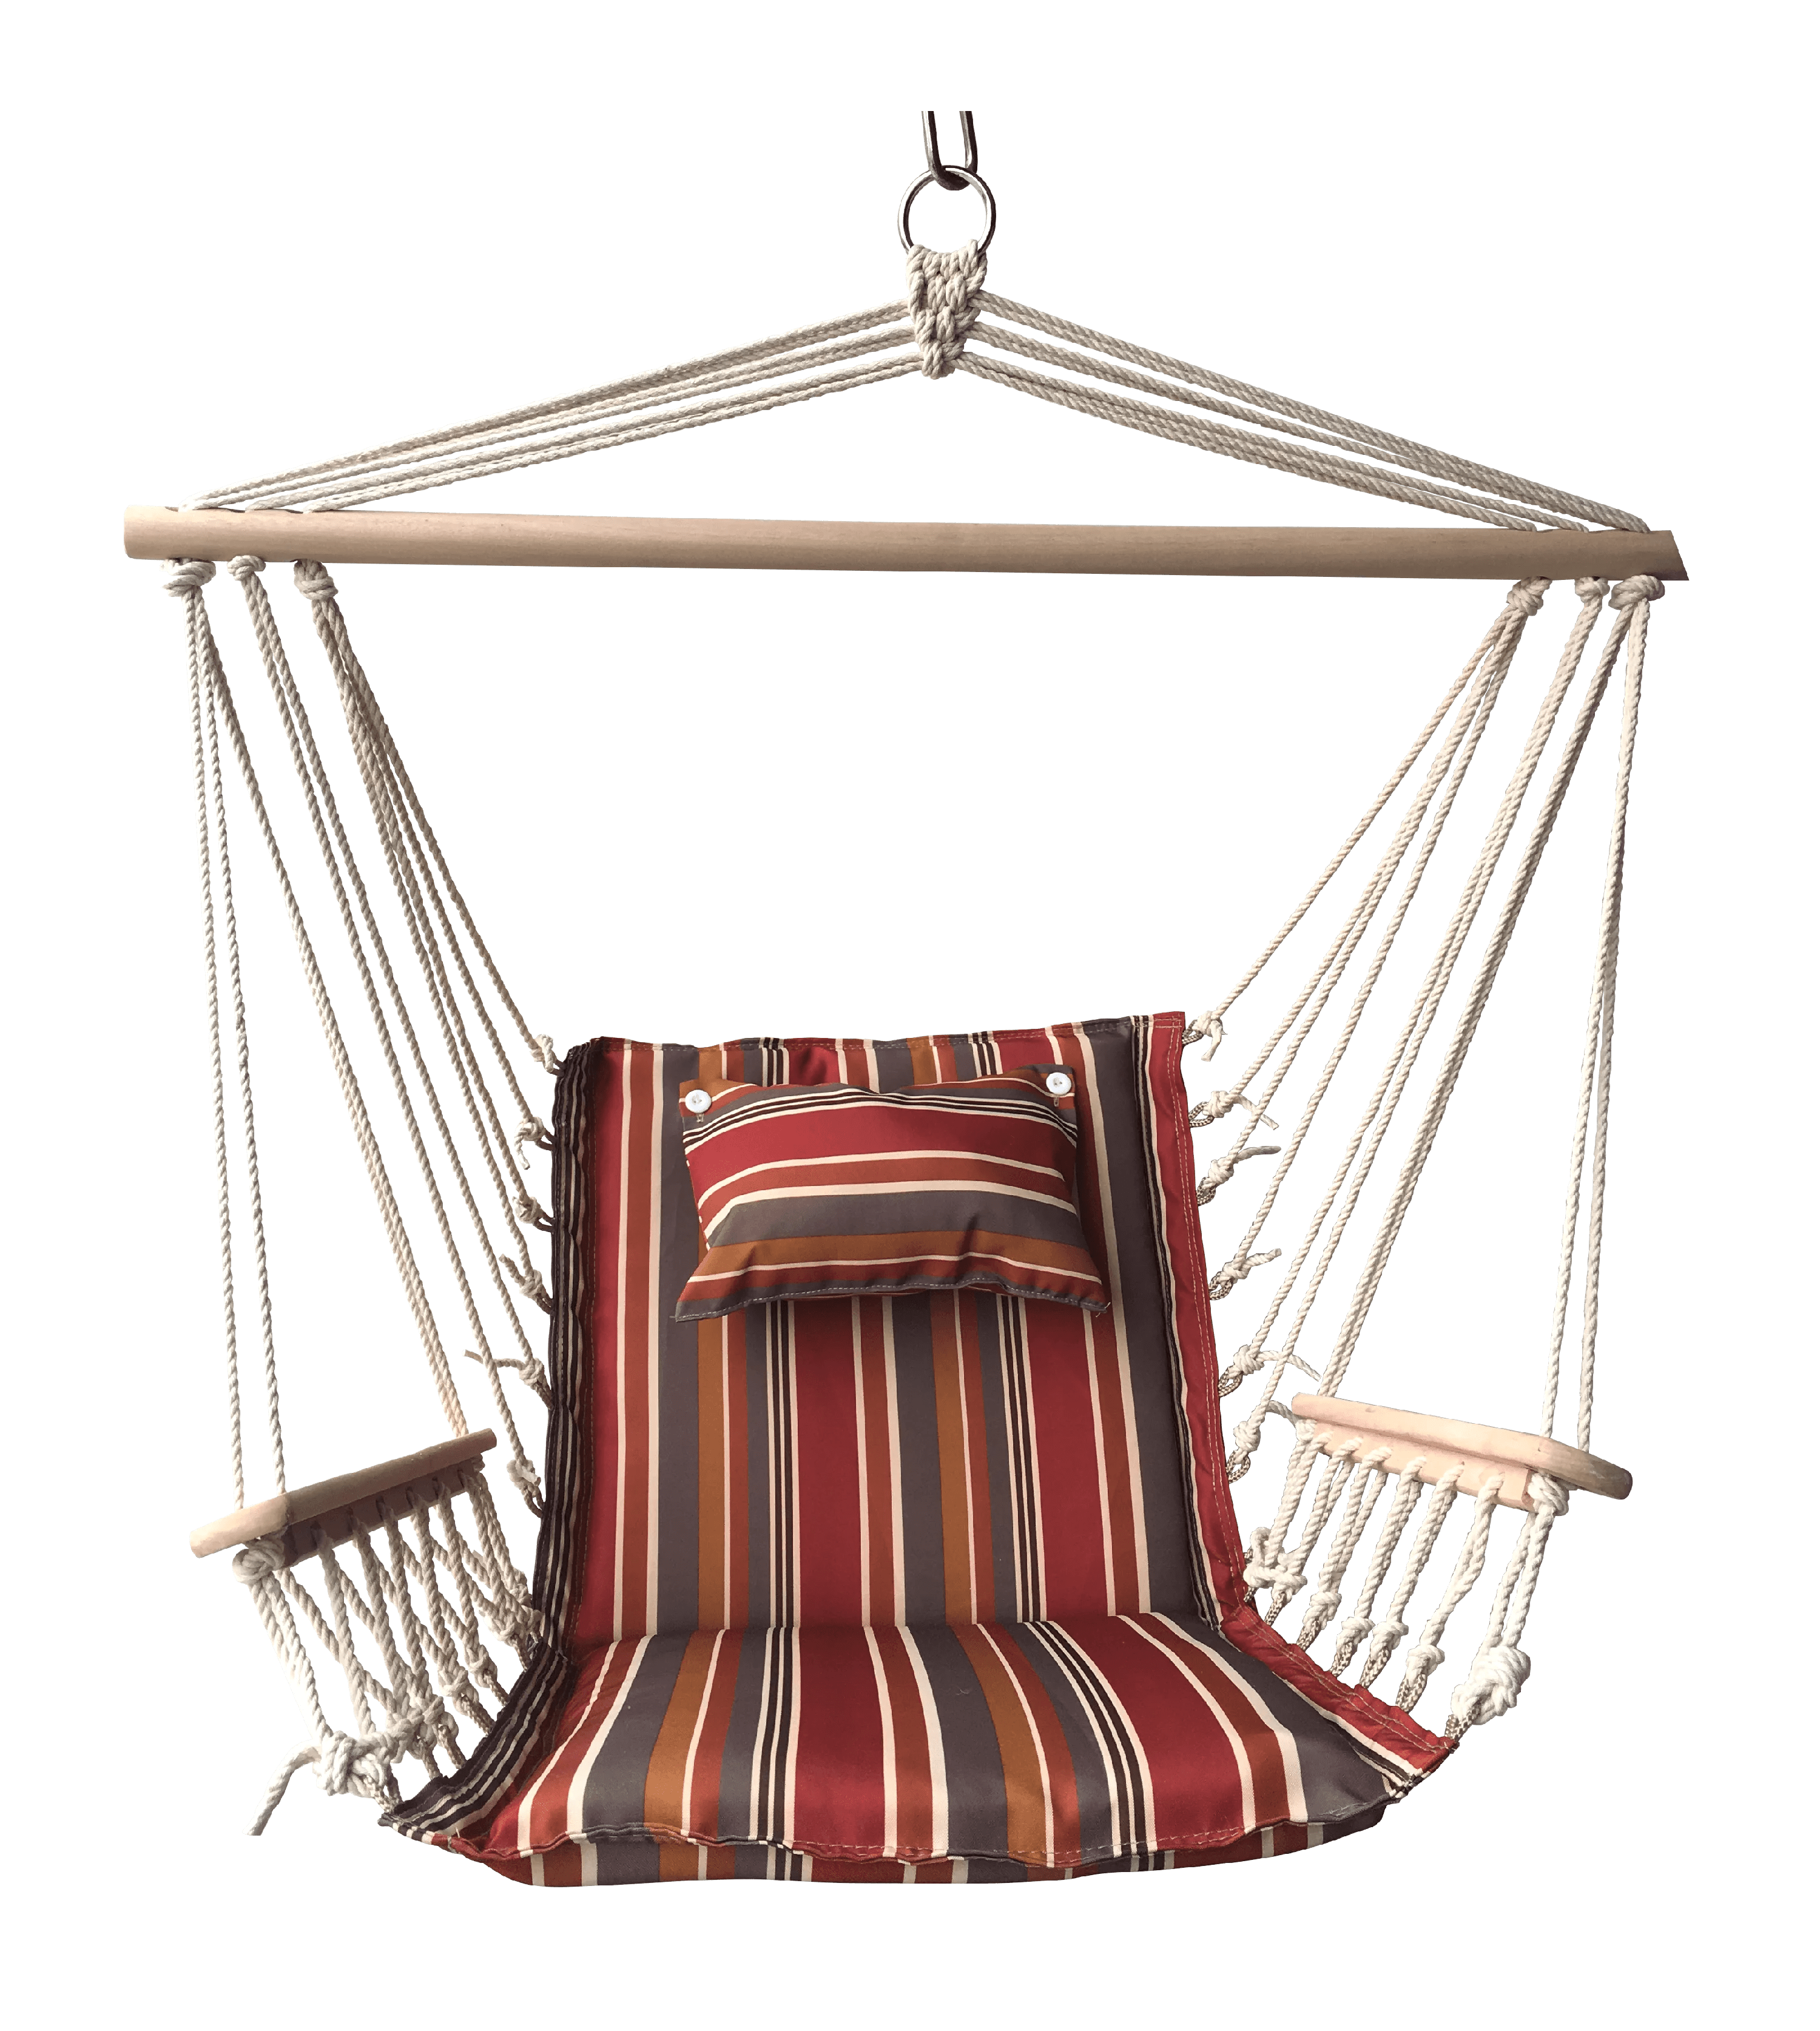 Spice Striped Hanging Hammock Swing Chair With Pillow